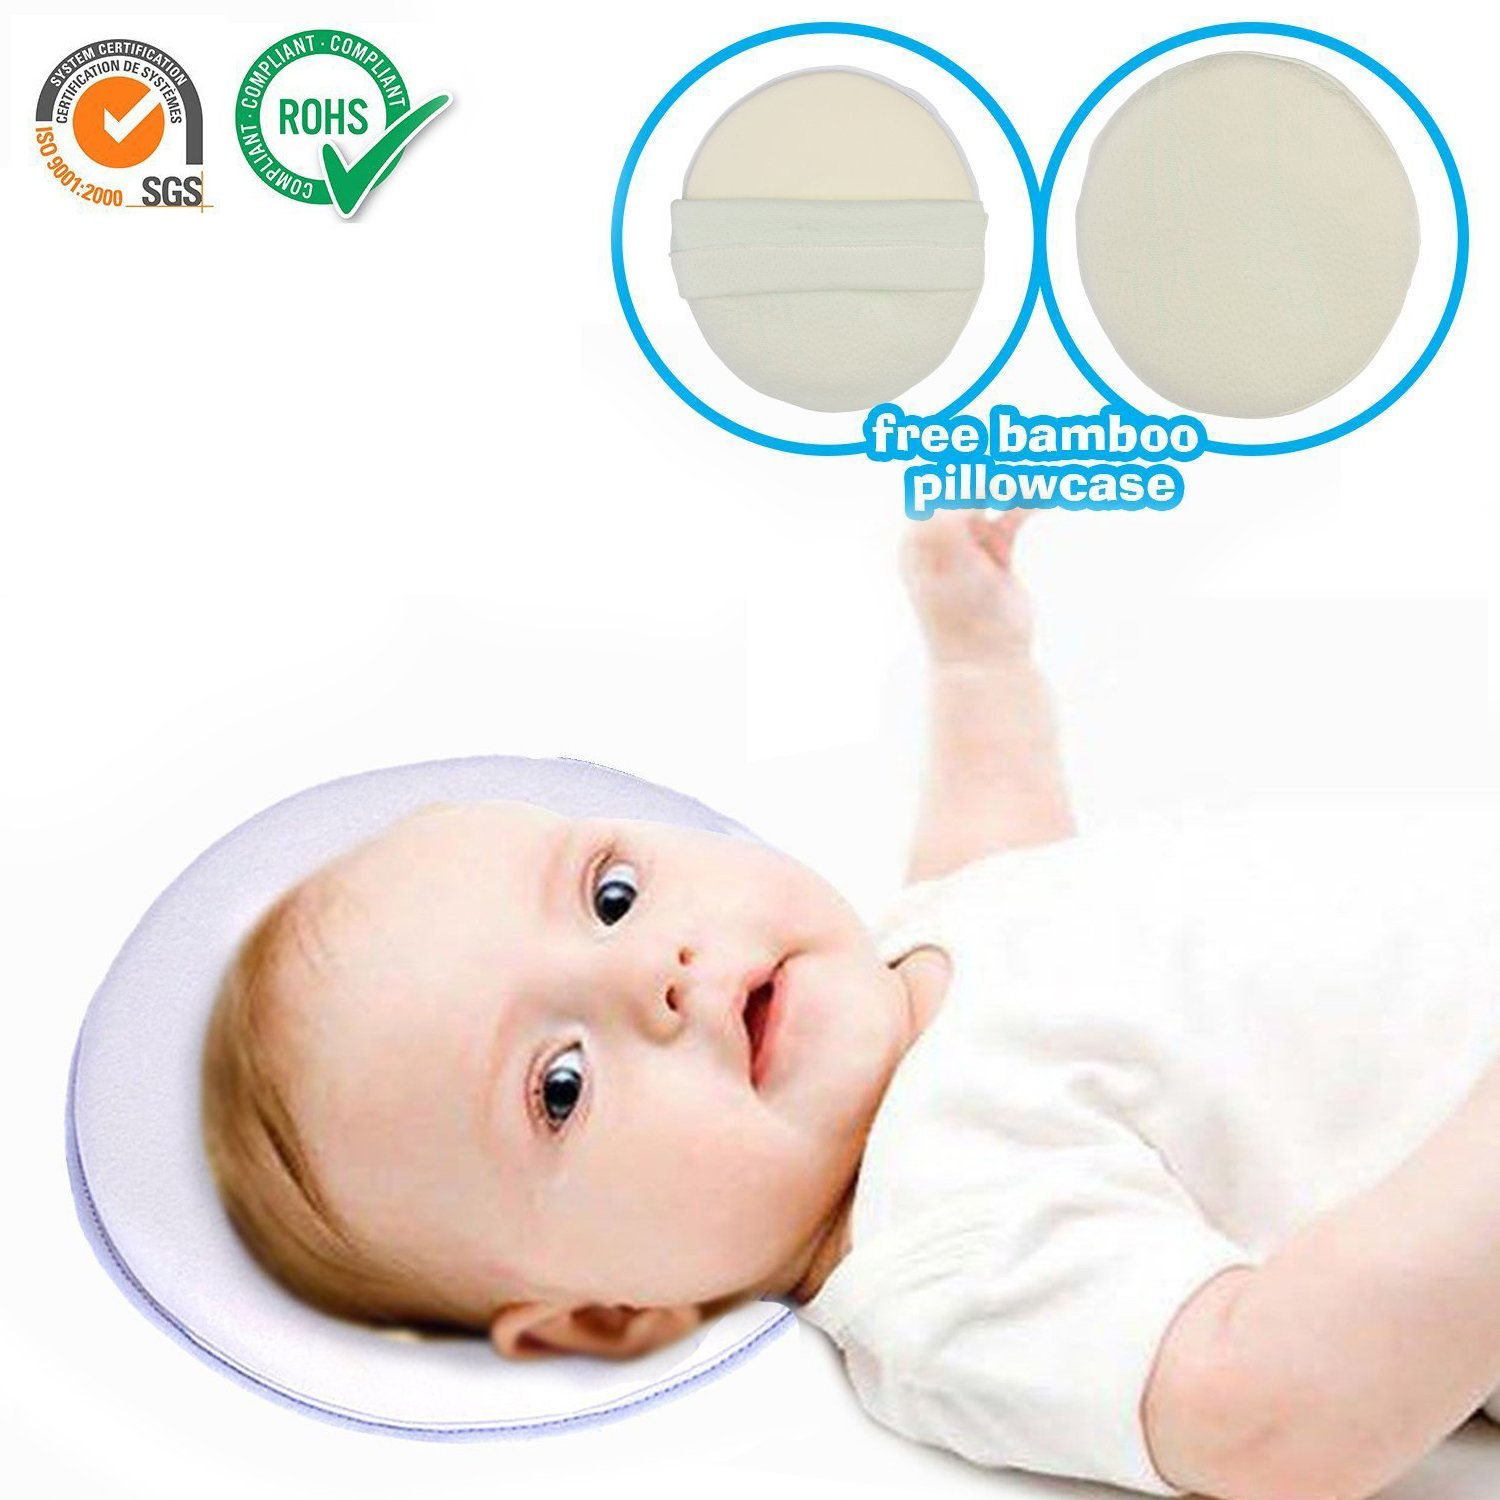 Buy Dimensions L39il Tots Welcome Baby Pillow Fleece Felt Mimos 86 Head Shaping Neck Support To Prevent Flat For Newborn 4 Months Infant Premium Safe Machine Washable Cotton Cloth White